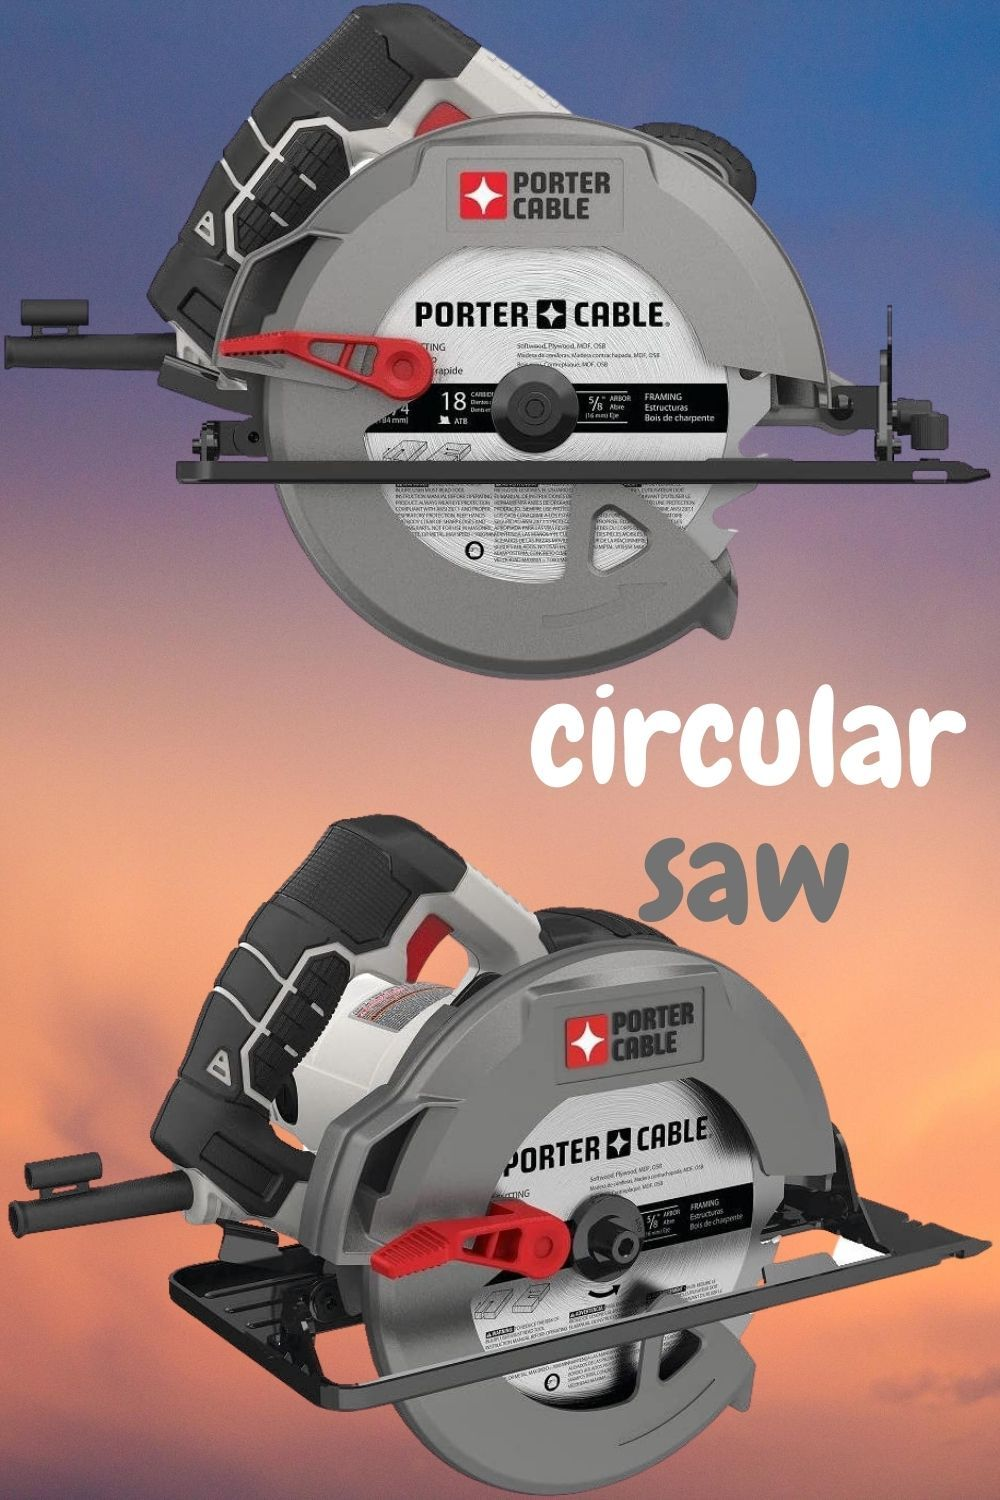 Porter Cable 7 1 4 Inch Circular Saw Heavy Duty Steel Shoe 15 Amp Pce300 In 2020